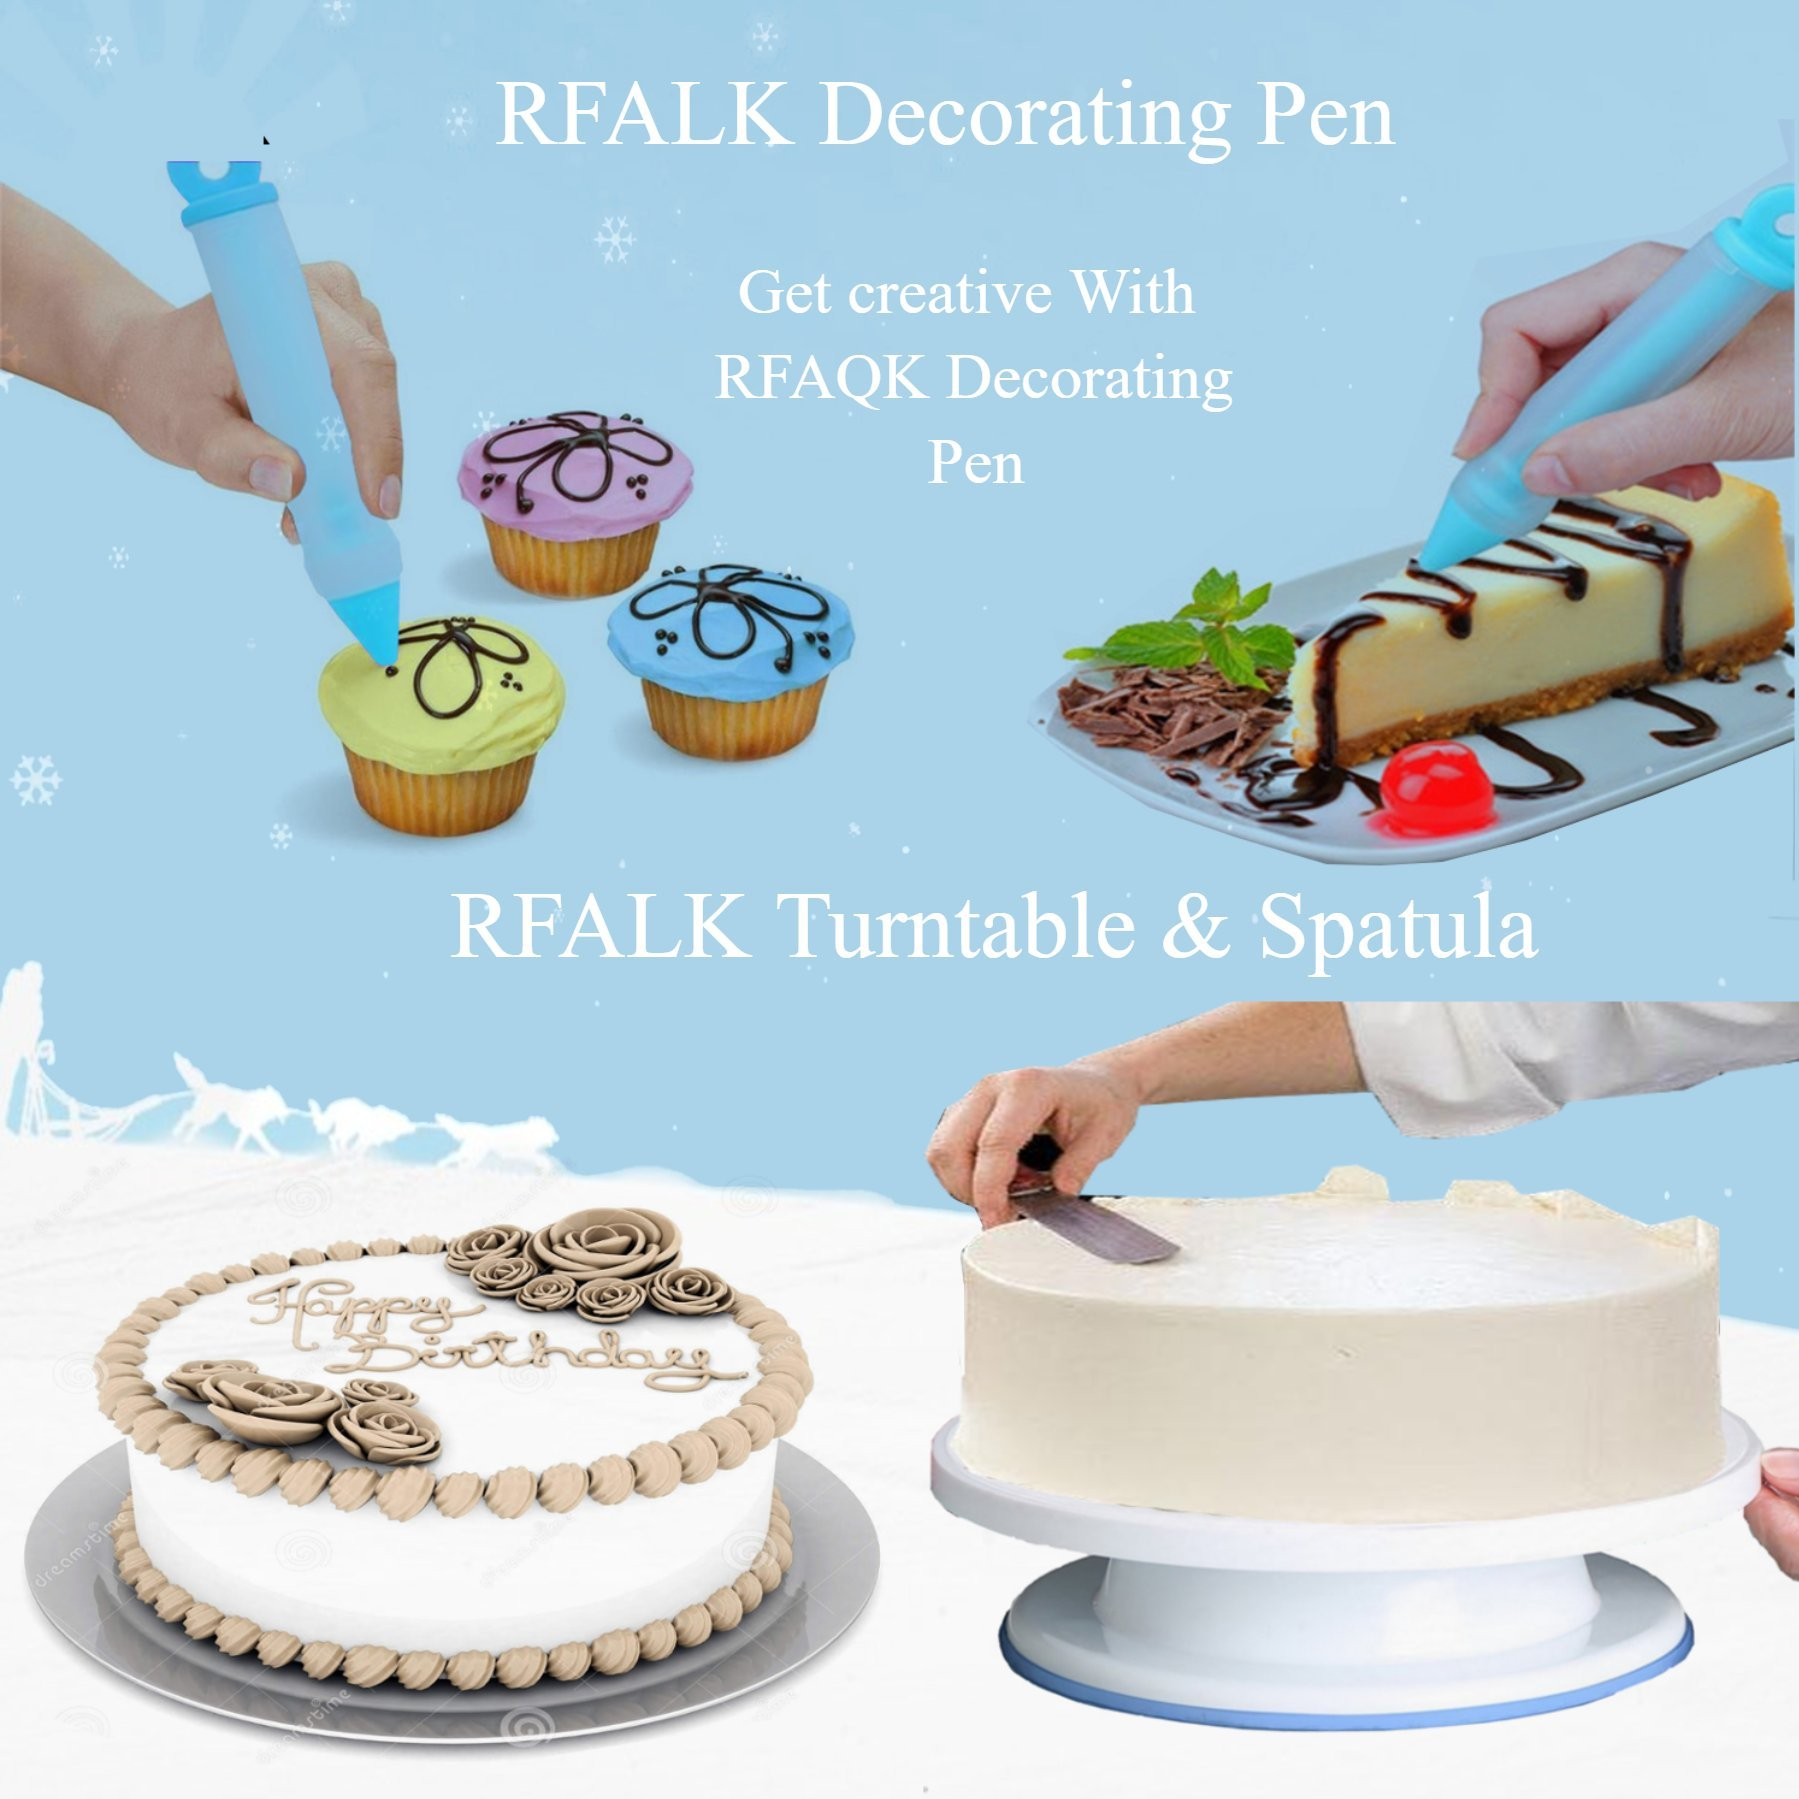 73 pcs Cake Decorating Supplies Kit for Beginners-1 Turntable stand-24 Numbered Easy to use icing tips with pattern chart and E.Book-1 Cake Leveler-Straight and Angled Spatula-3 Russian Piping nozzles by RFAQK (Image #6)